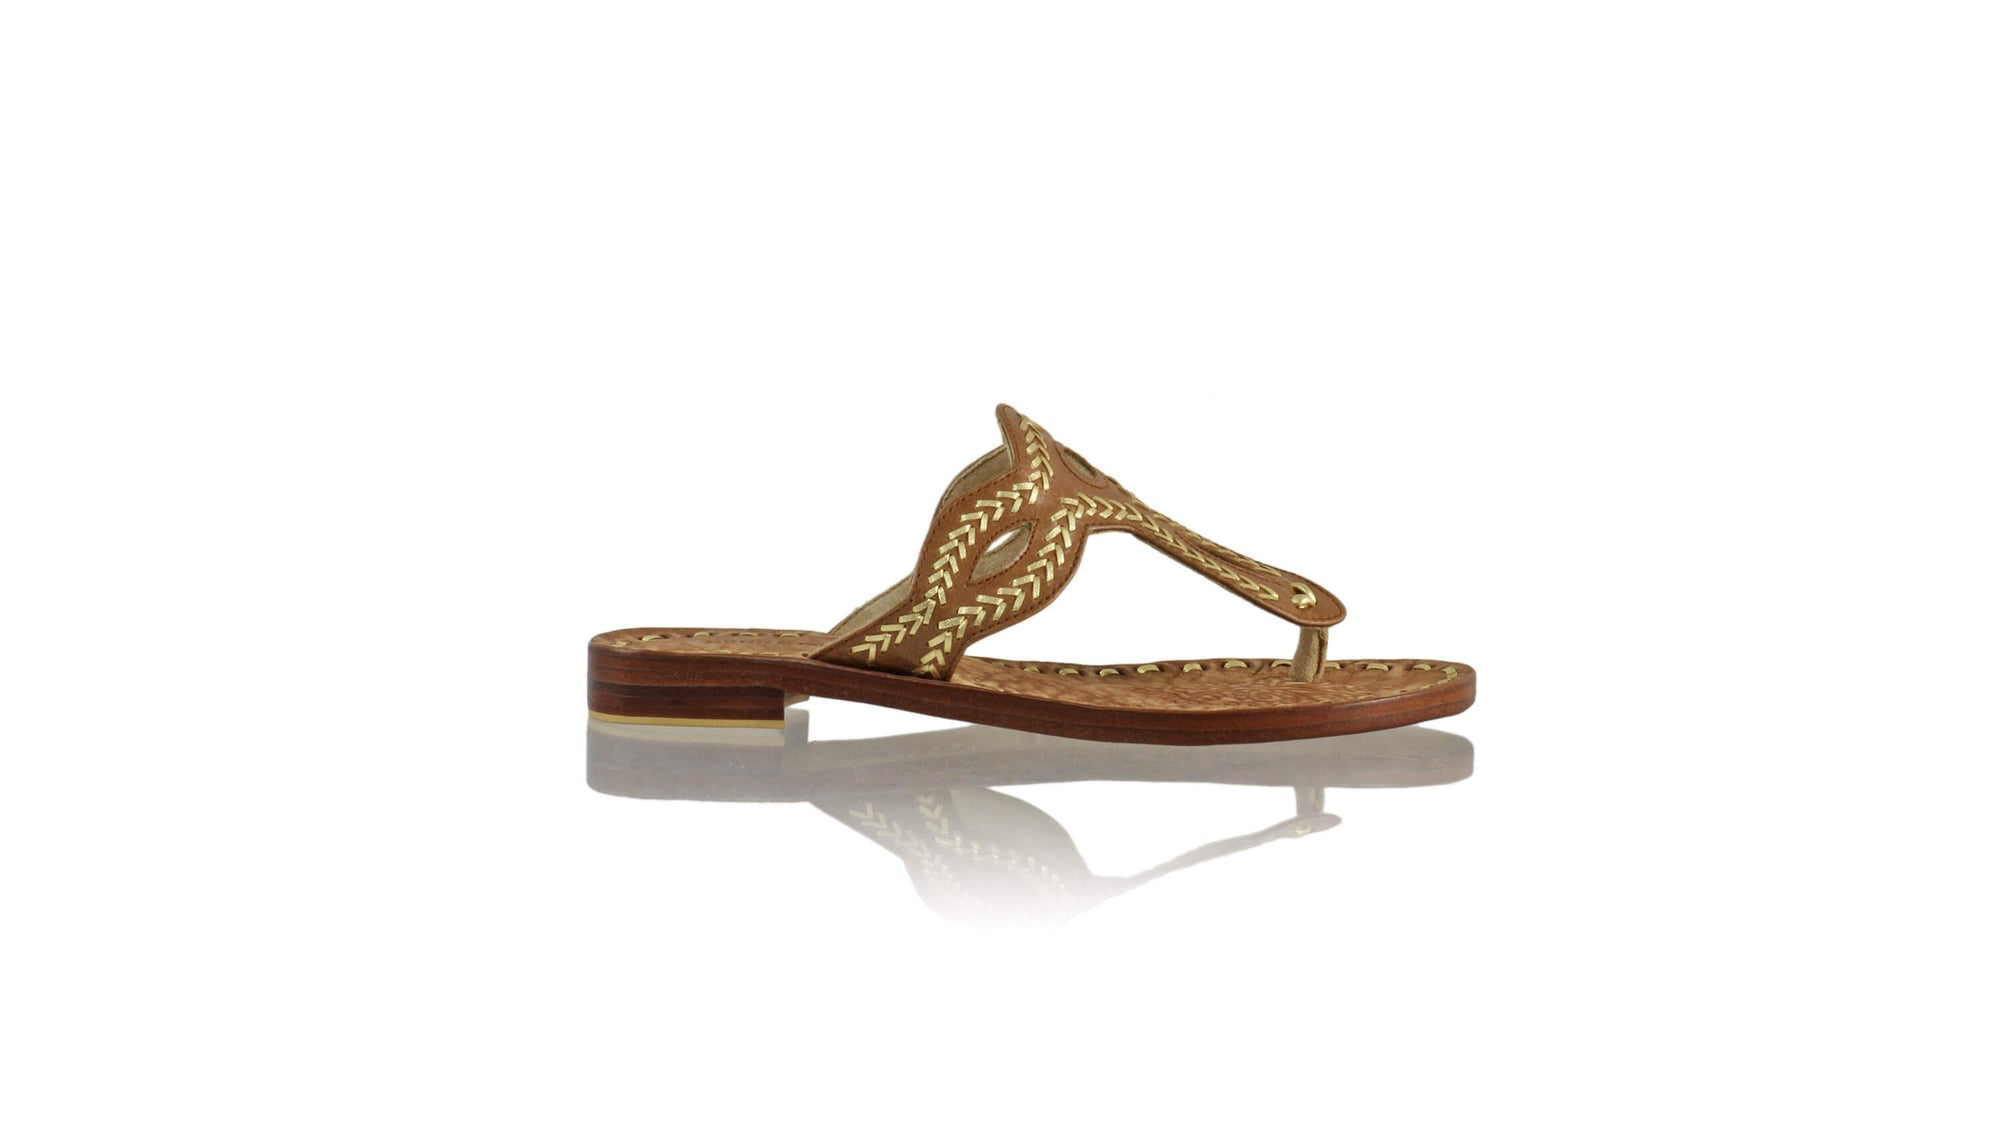 Leather-shoes-Africa 20mm Flat - Brown & Gold-sandals flat-NILUH DJELANTIK-NILUH DJELANTIK